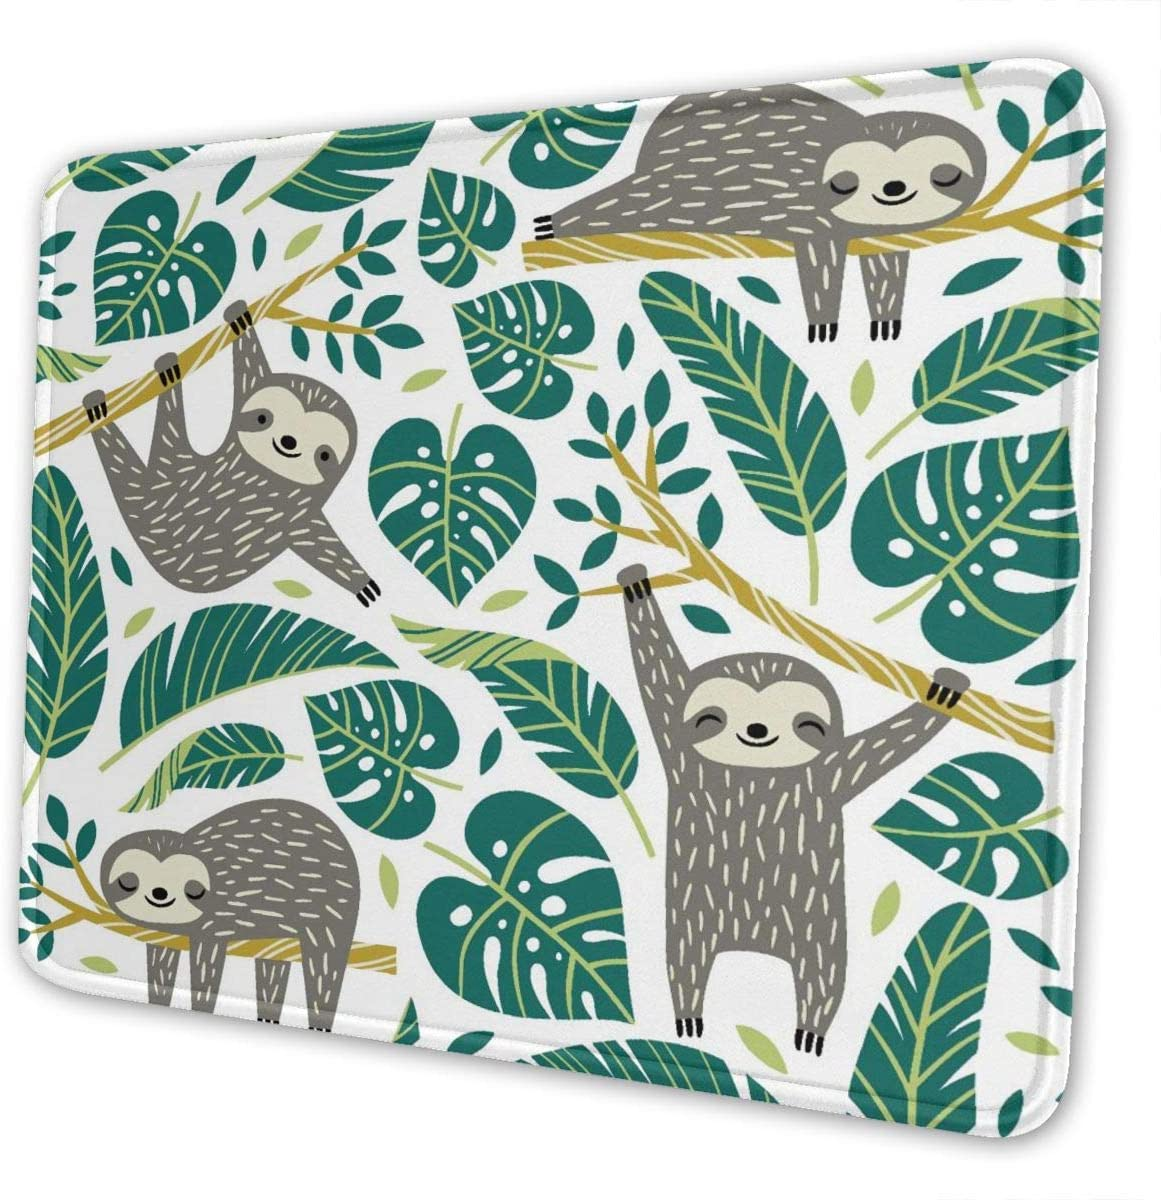 Mouse Pad Cute Sloths and Tropical Palm Leaves with Non-Slip Rubber Base, Premium-Textured Mousepads Bulk with Stitched Edges, Mouse Mat for Computers Gaming Laptop Office & Home 9.8x11.8 in